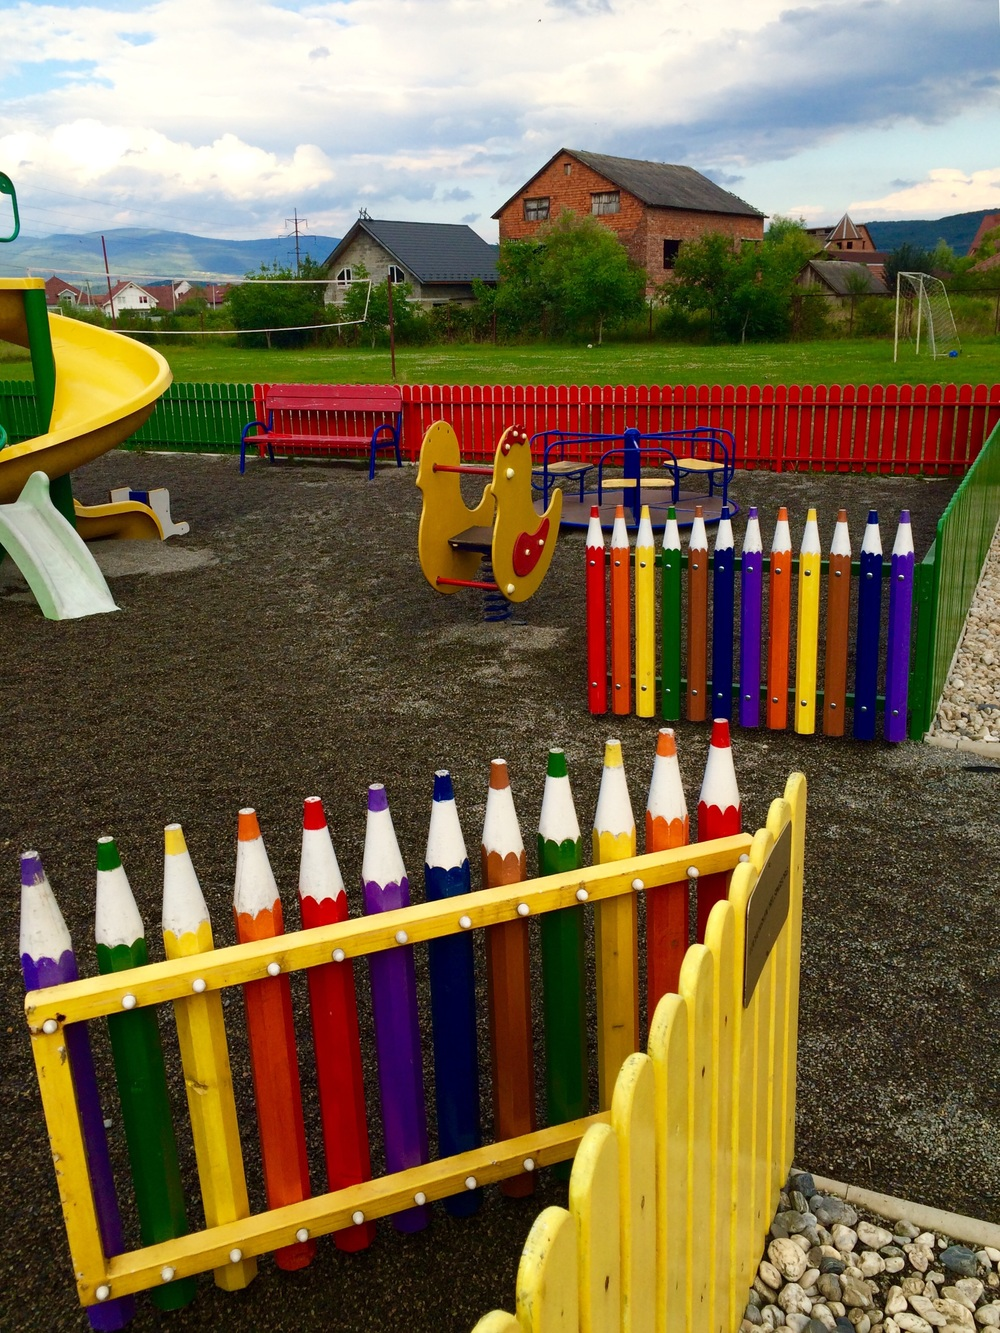 Good to see the colourful playground for children to play.